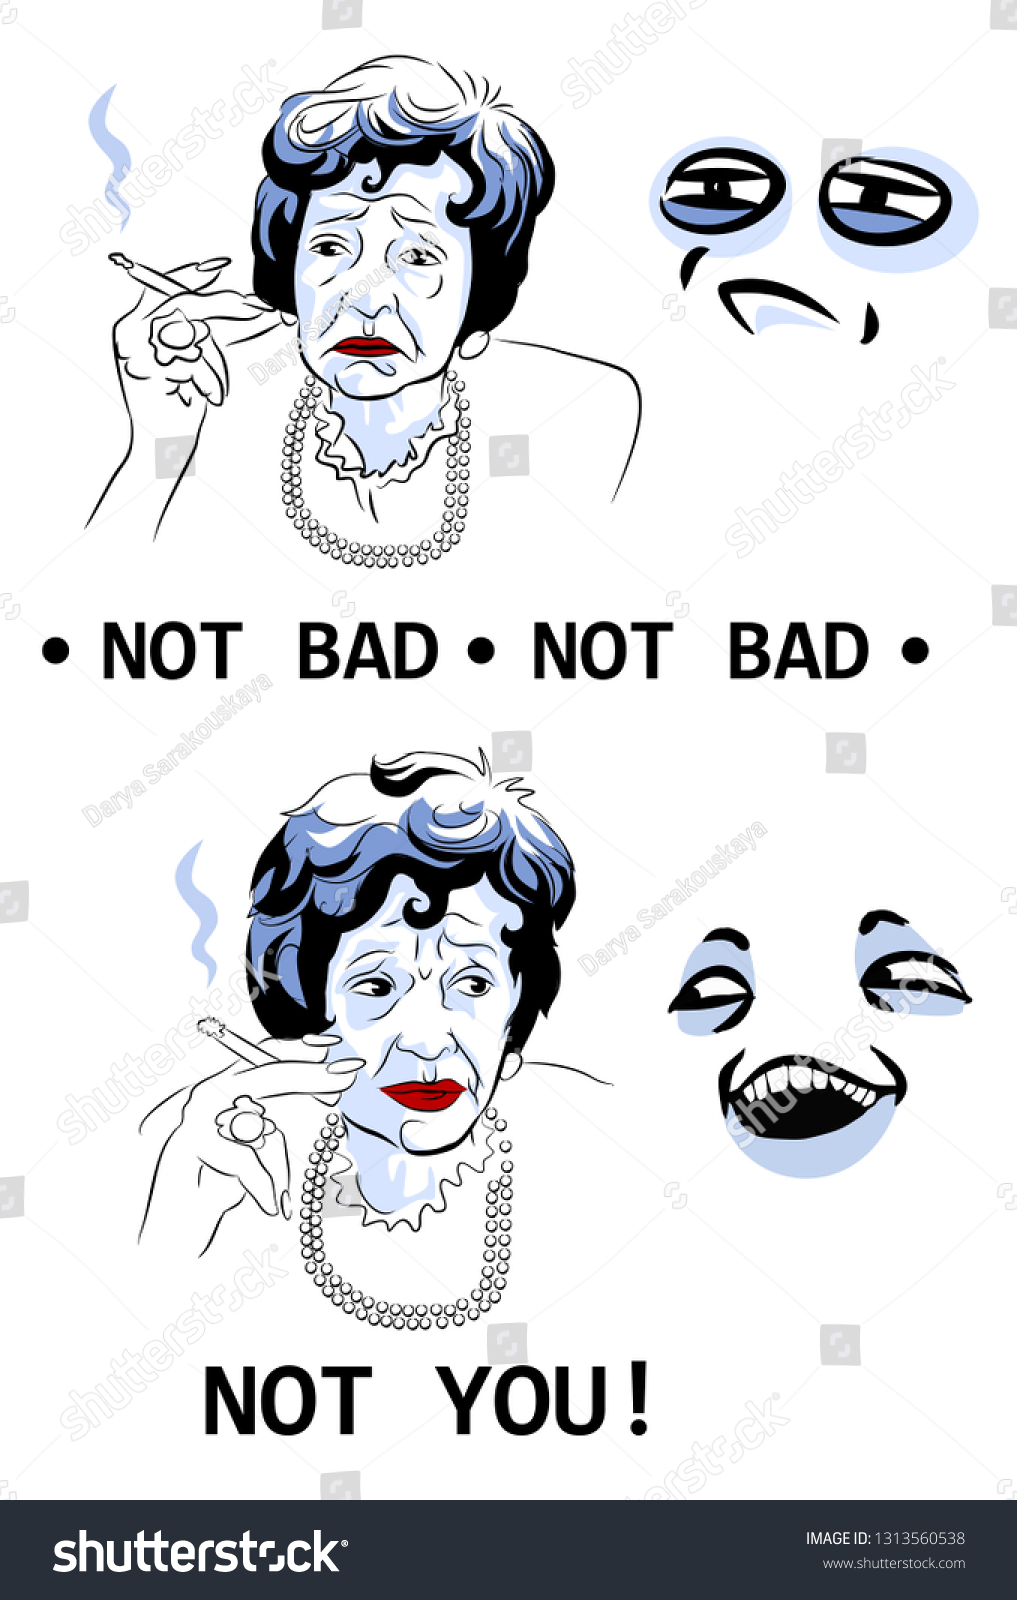 Not Bad Not You Internet Meme Stock Vector Royalty Free 1313560538